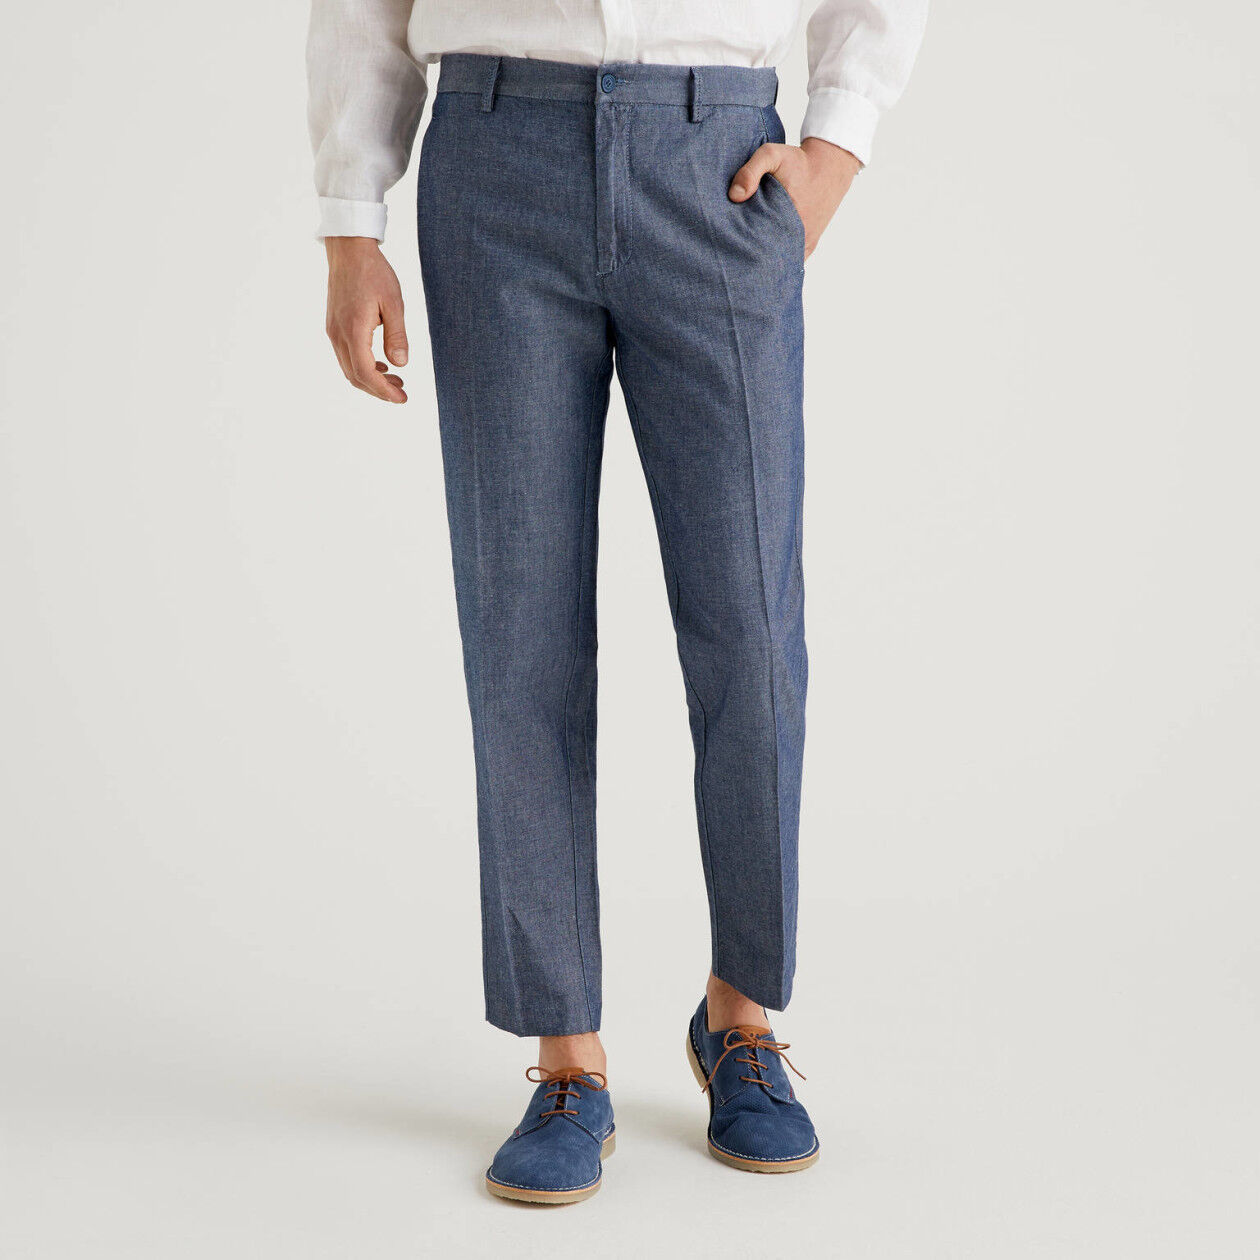 Pants in linen blend